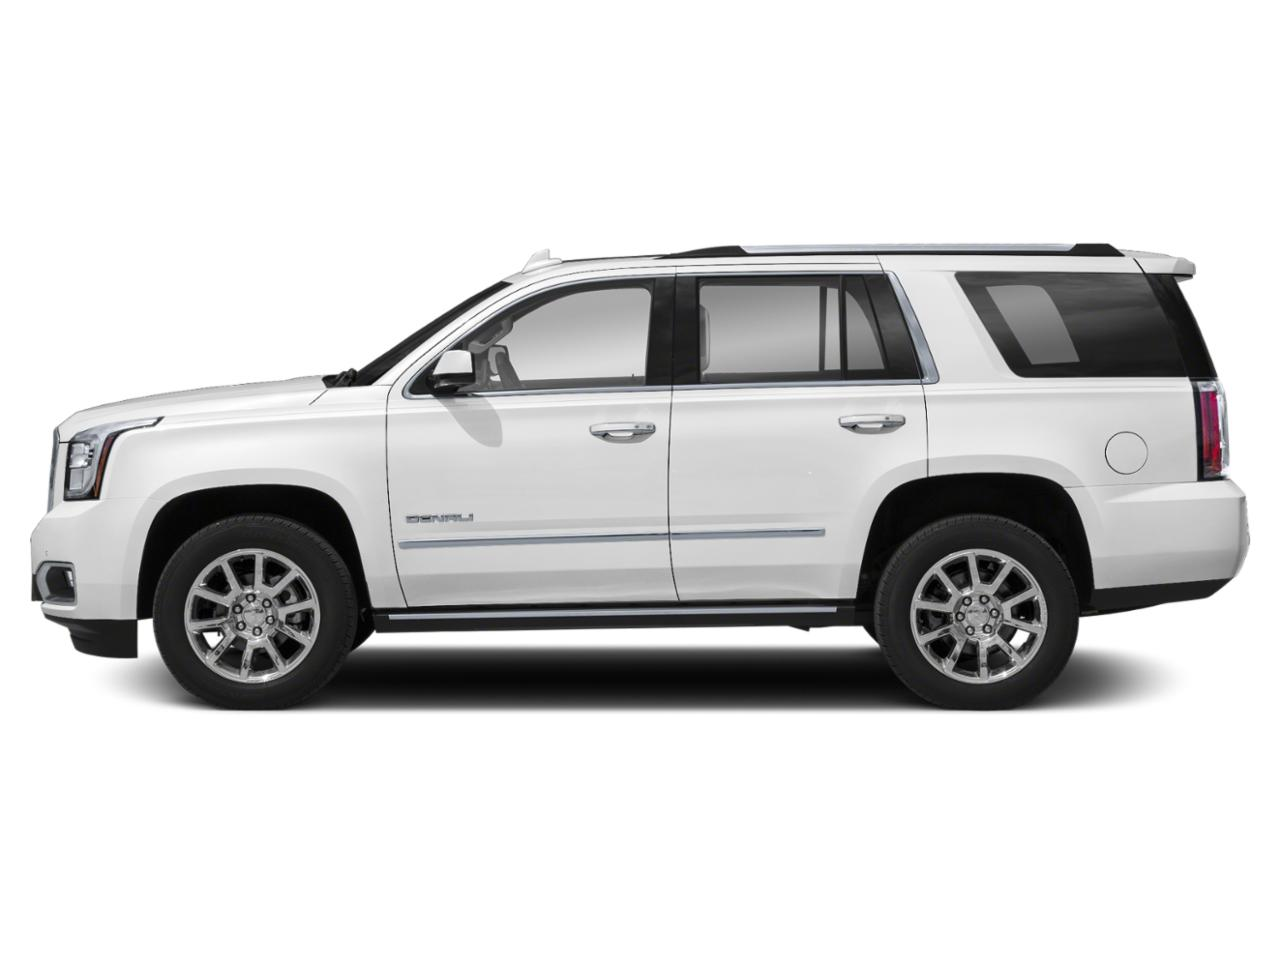 new 2020 gmc yukon 4wd 4dr denali for sale | jerry seiner